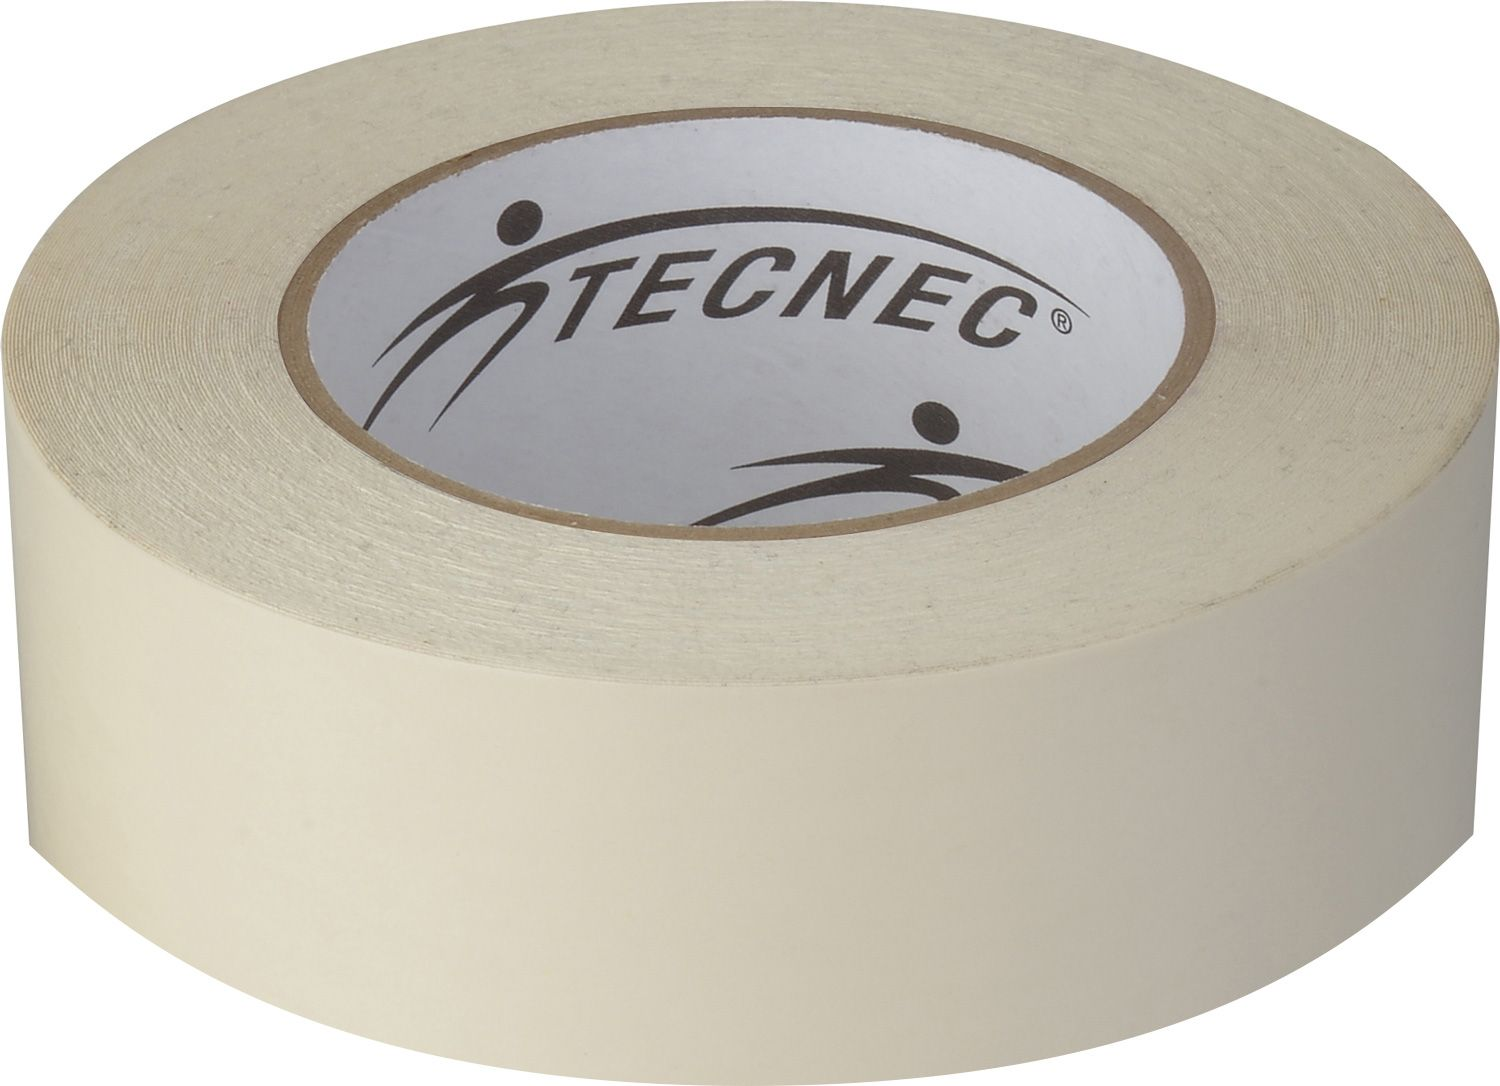 Pocket Pro Gaff White Gaffers Tape 1 inch X 6  yards on 1 inch core